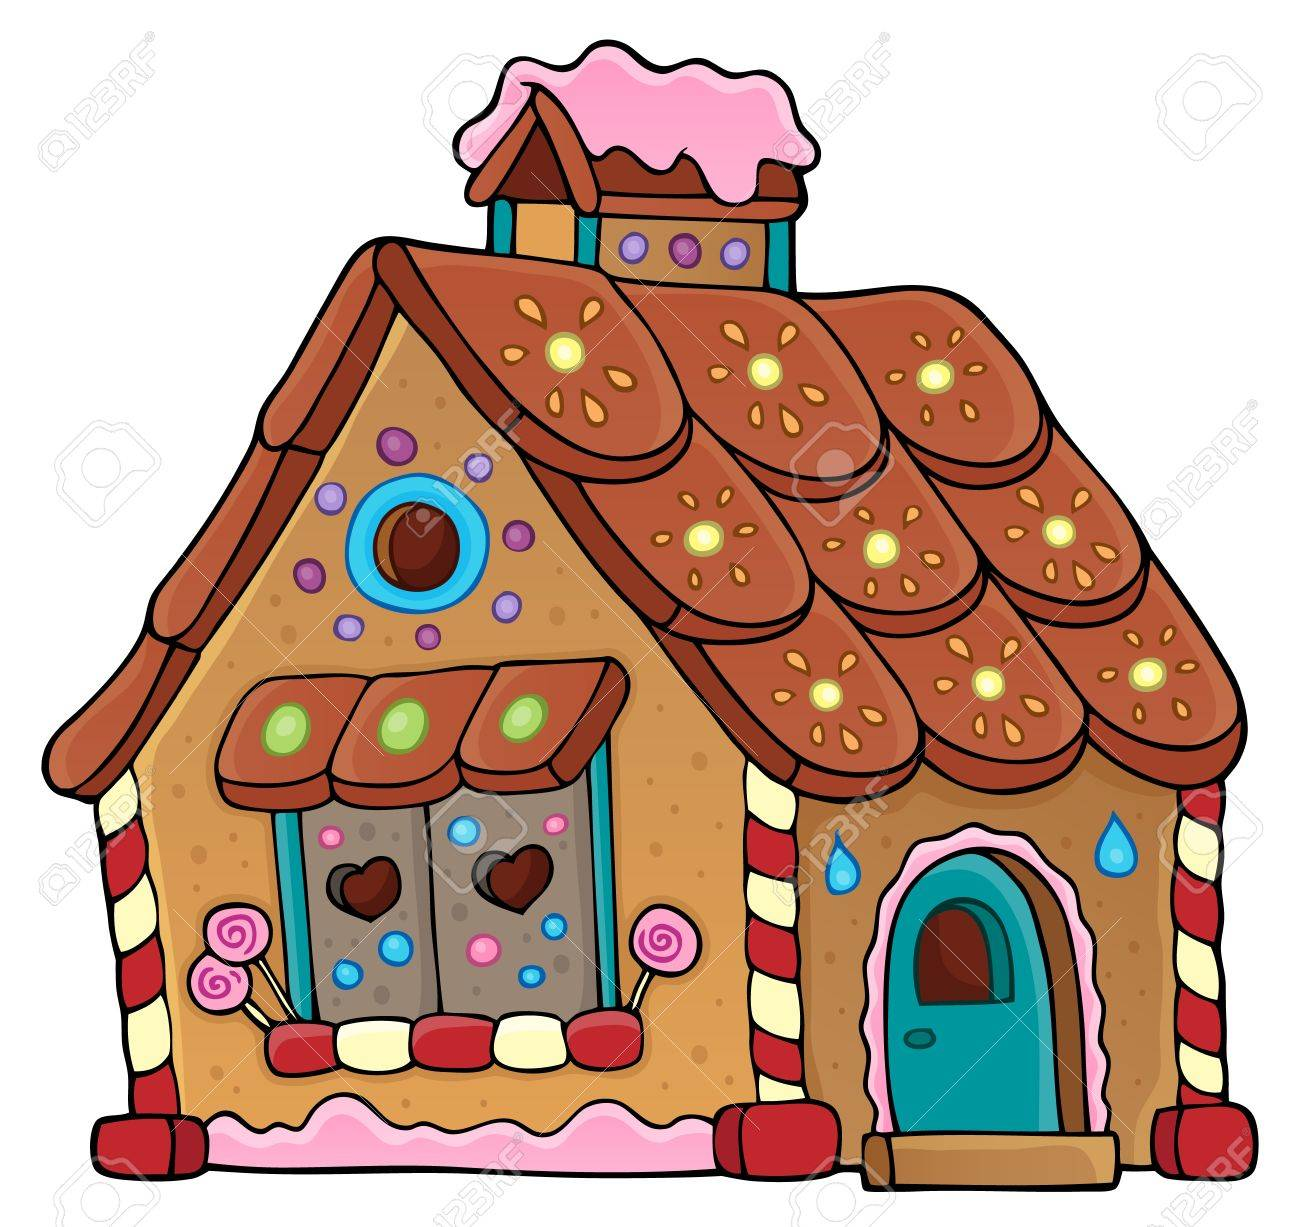 gingerbread house theme image 1 eps10 vector illustration royalty rh 123rf com gingerbread house clip art black and white gingerbread house clip art images